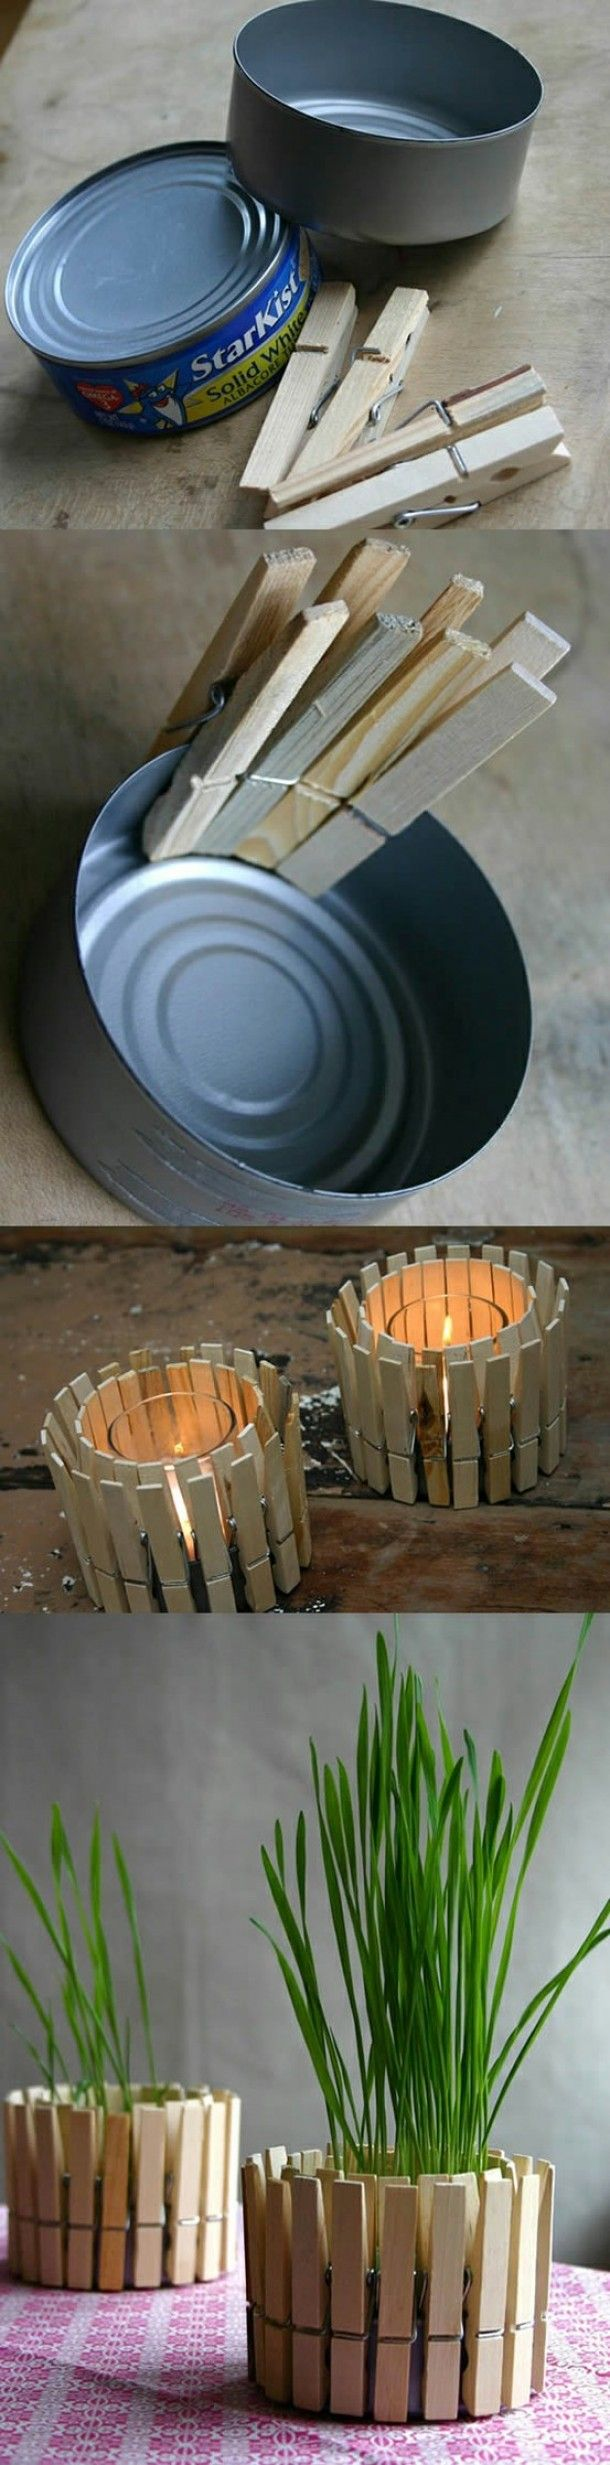 I love this recycling idea, and found it st the perfect time b/c I really want…